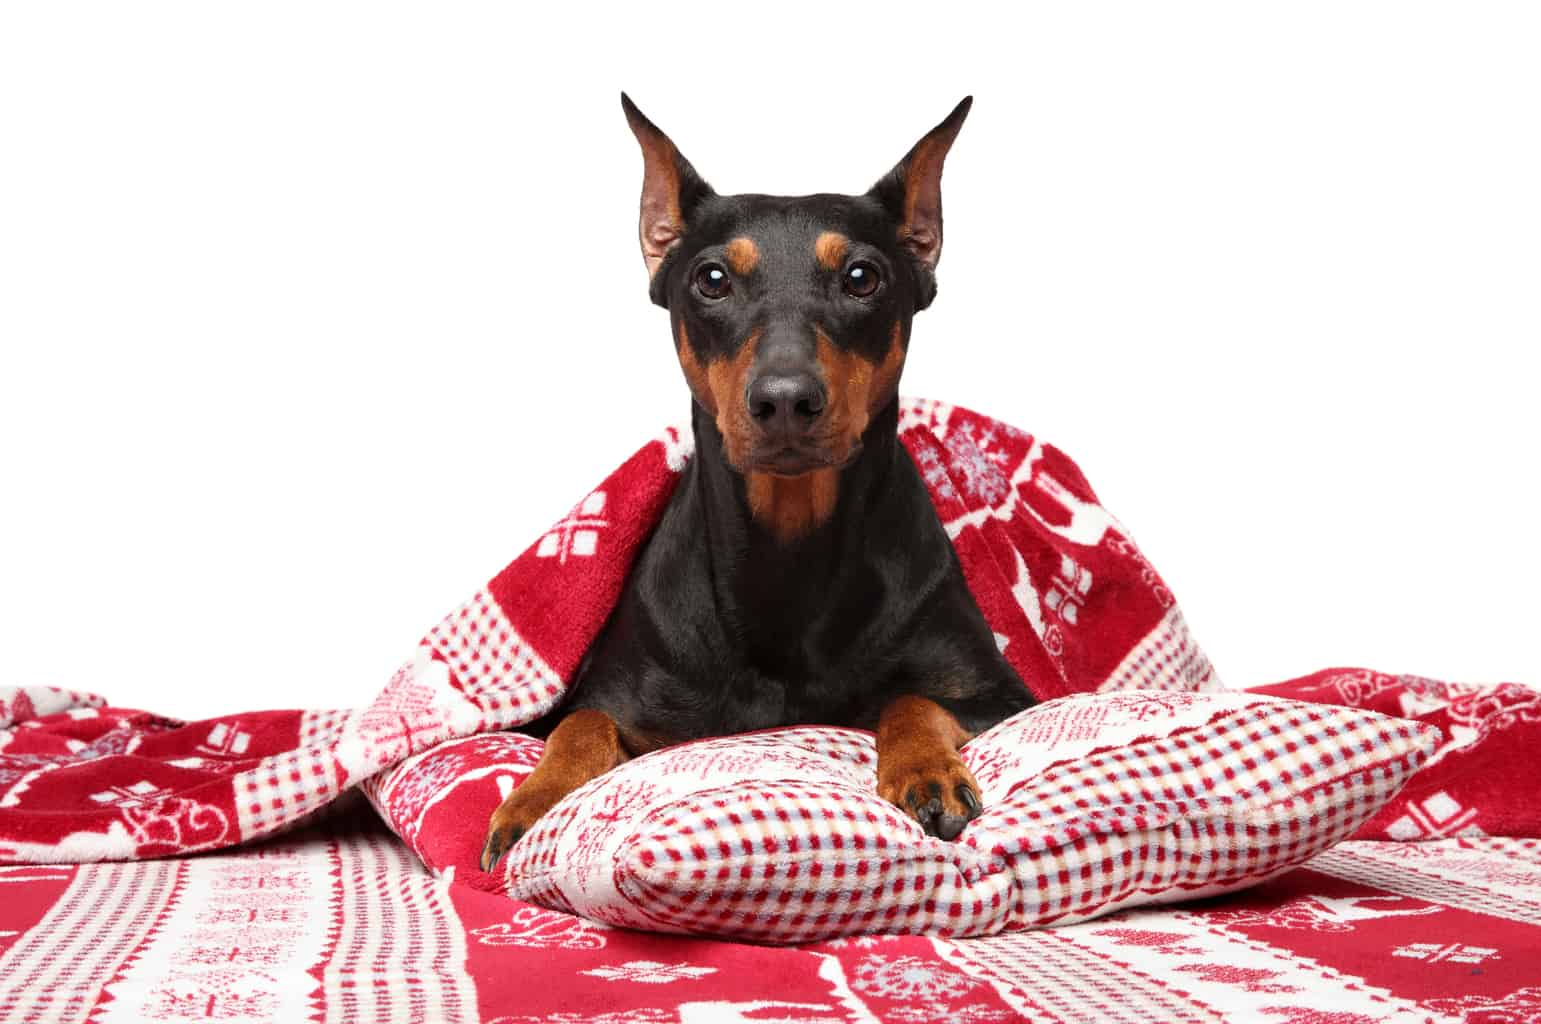 German Pinscher under blanket posing on a white background. Animal themes